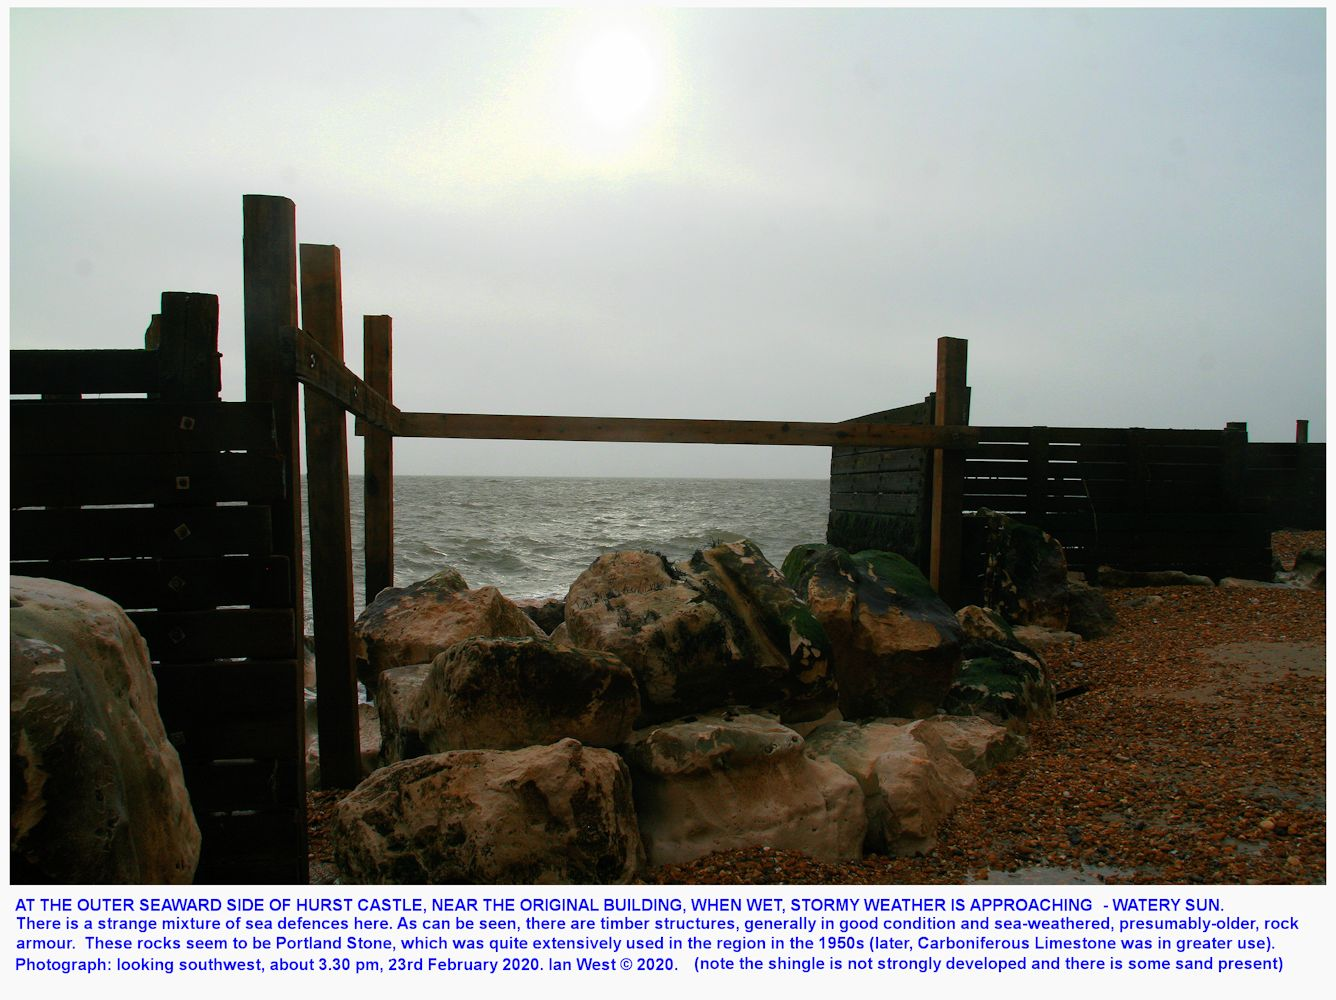 At the outer wall of the castle, looking at a watery sun, before the rain arrived, Hurst Castle, Hampshire, pm, 23rd February 2020